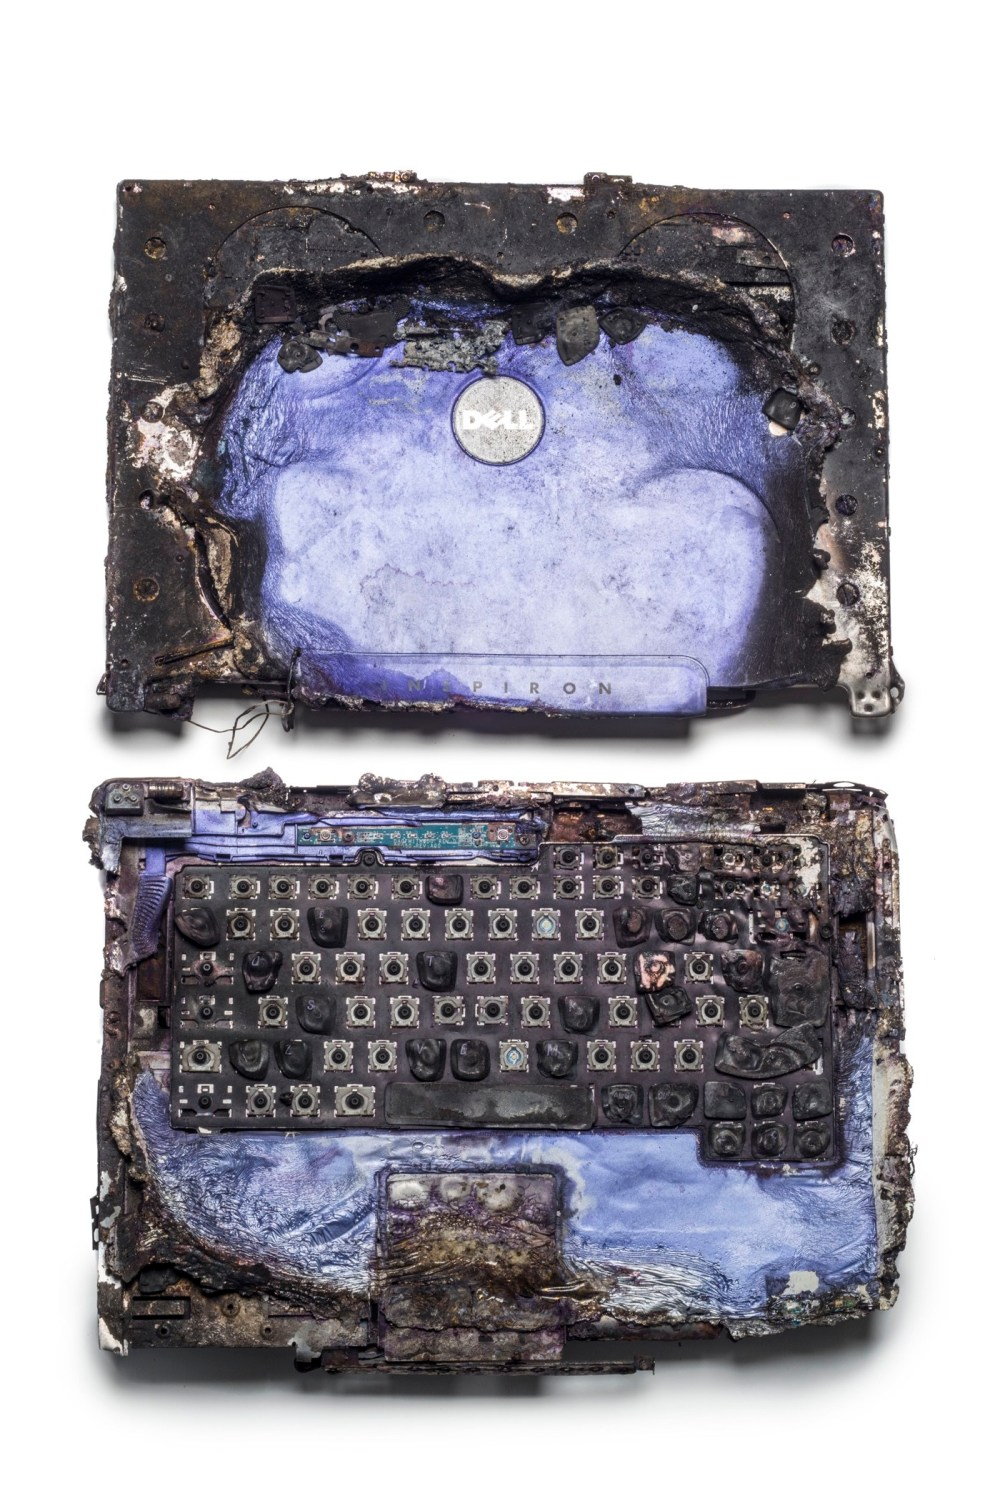 4a.-Laptop-recovered-from-Glasgow-Airport-Terrorist-Attack-c-Museum-of-London.jpg